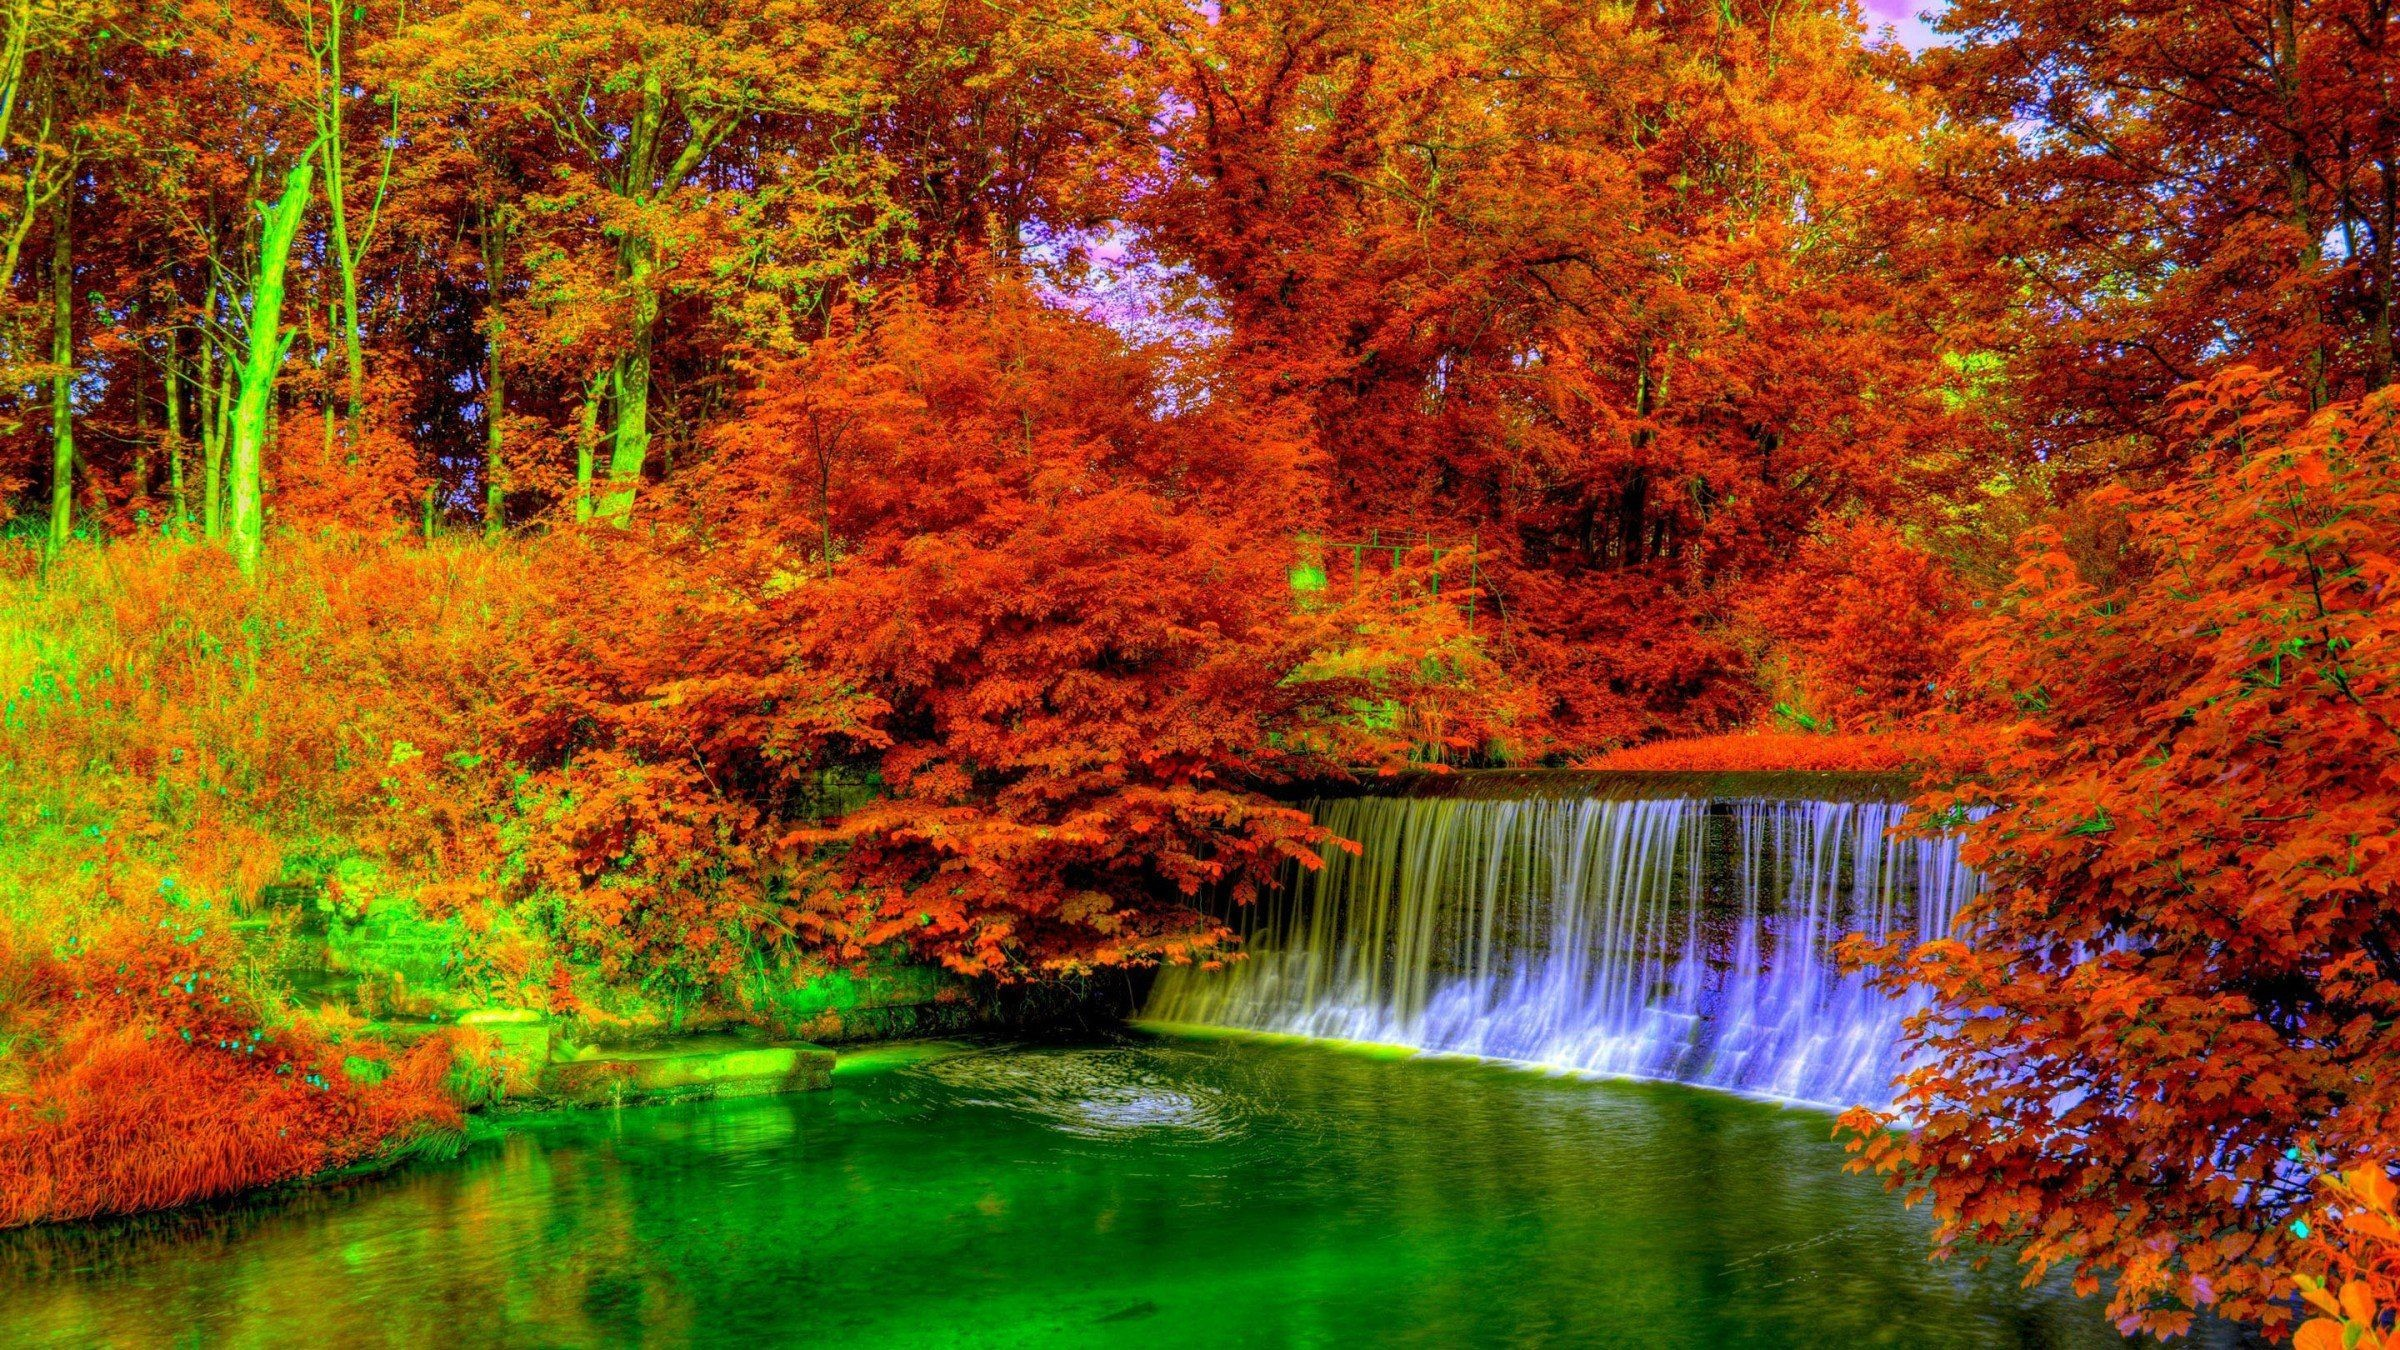 Awesome nature backgrounds 63 images - Background images nature ...